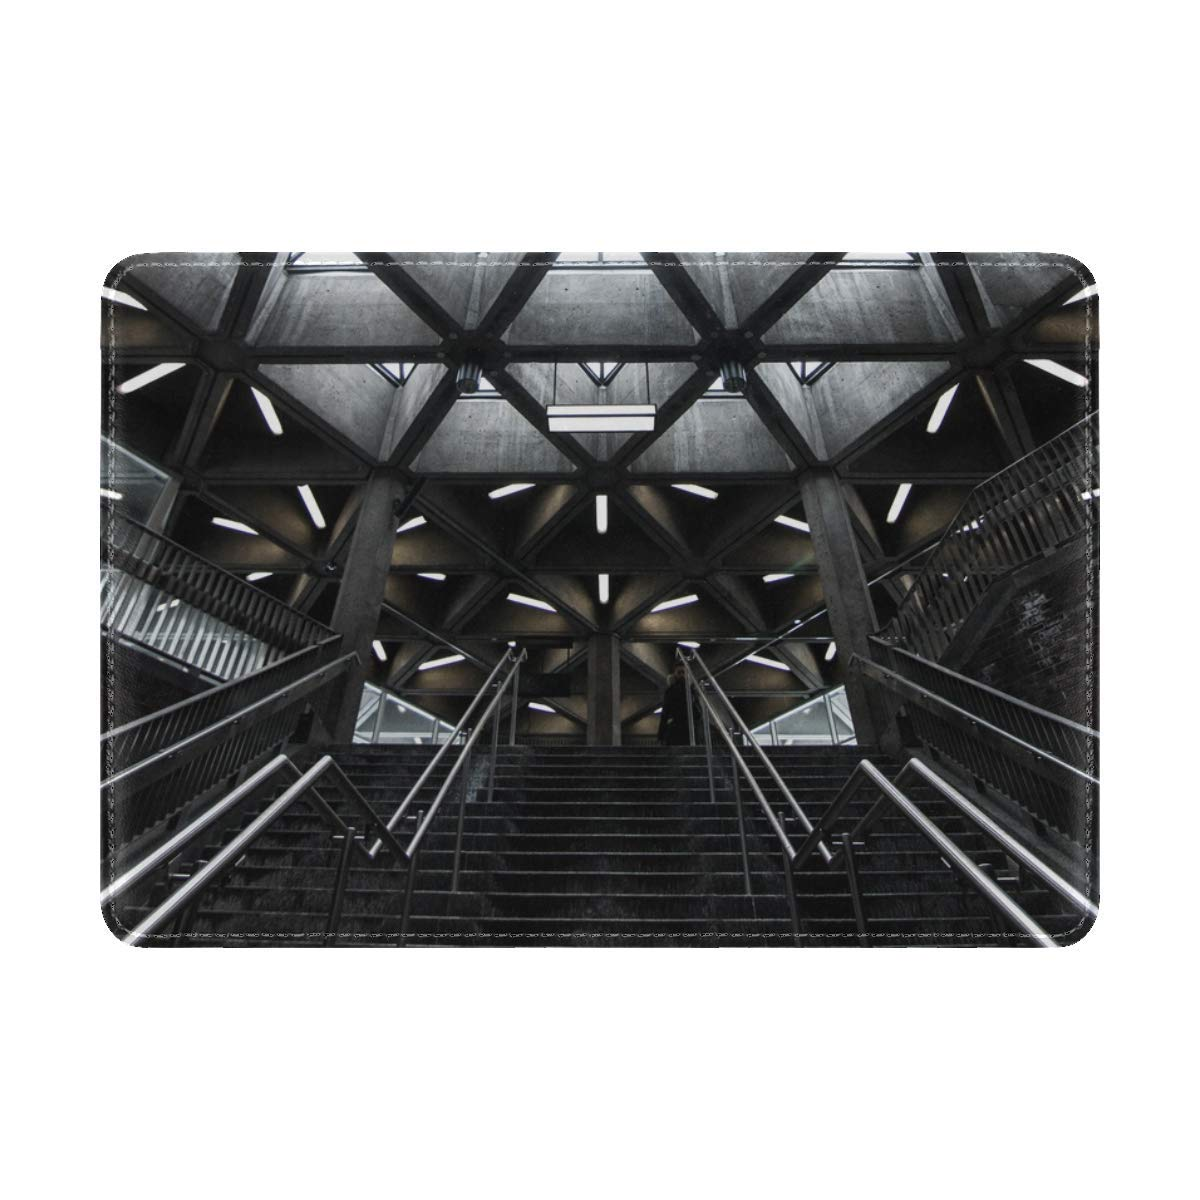 Stairs Ceiling Architecture Leather Passport Holder Cover Case Travel One Pocket